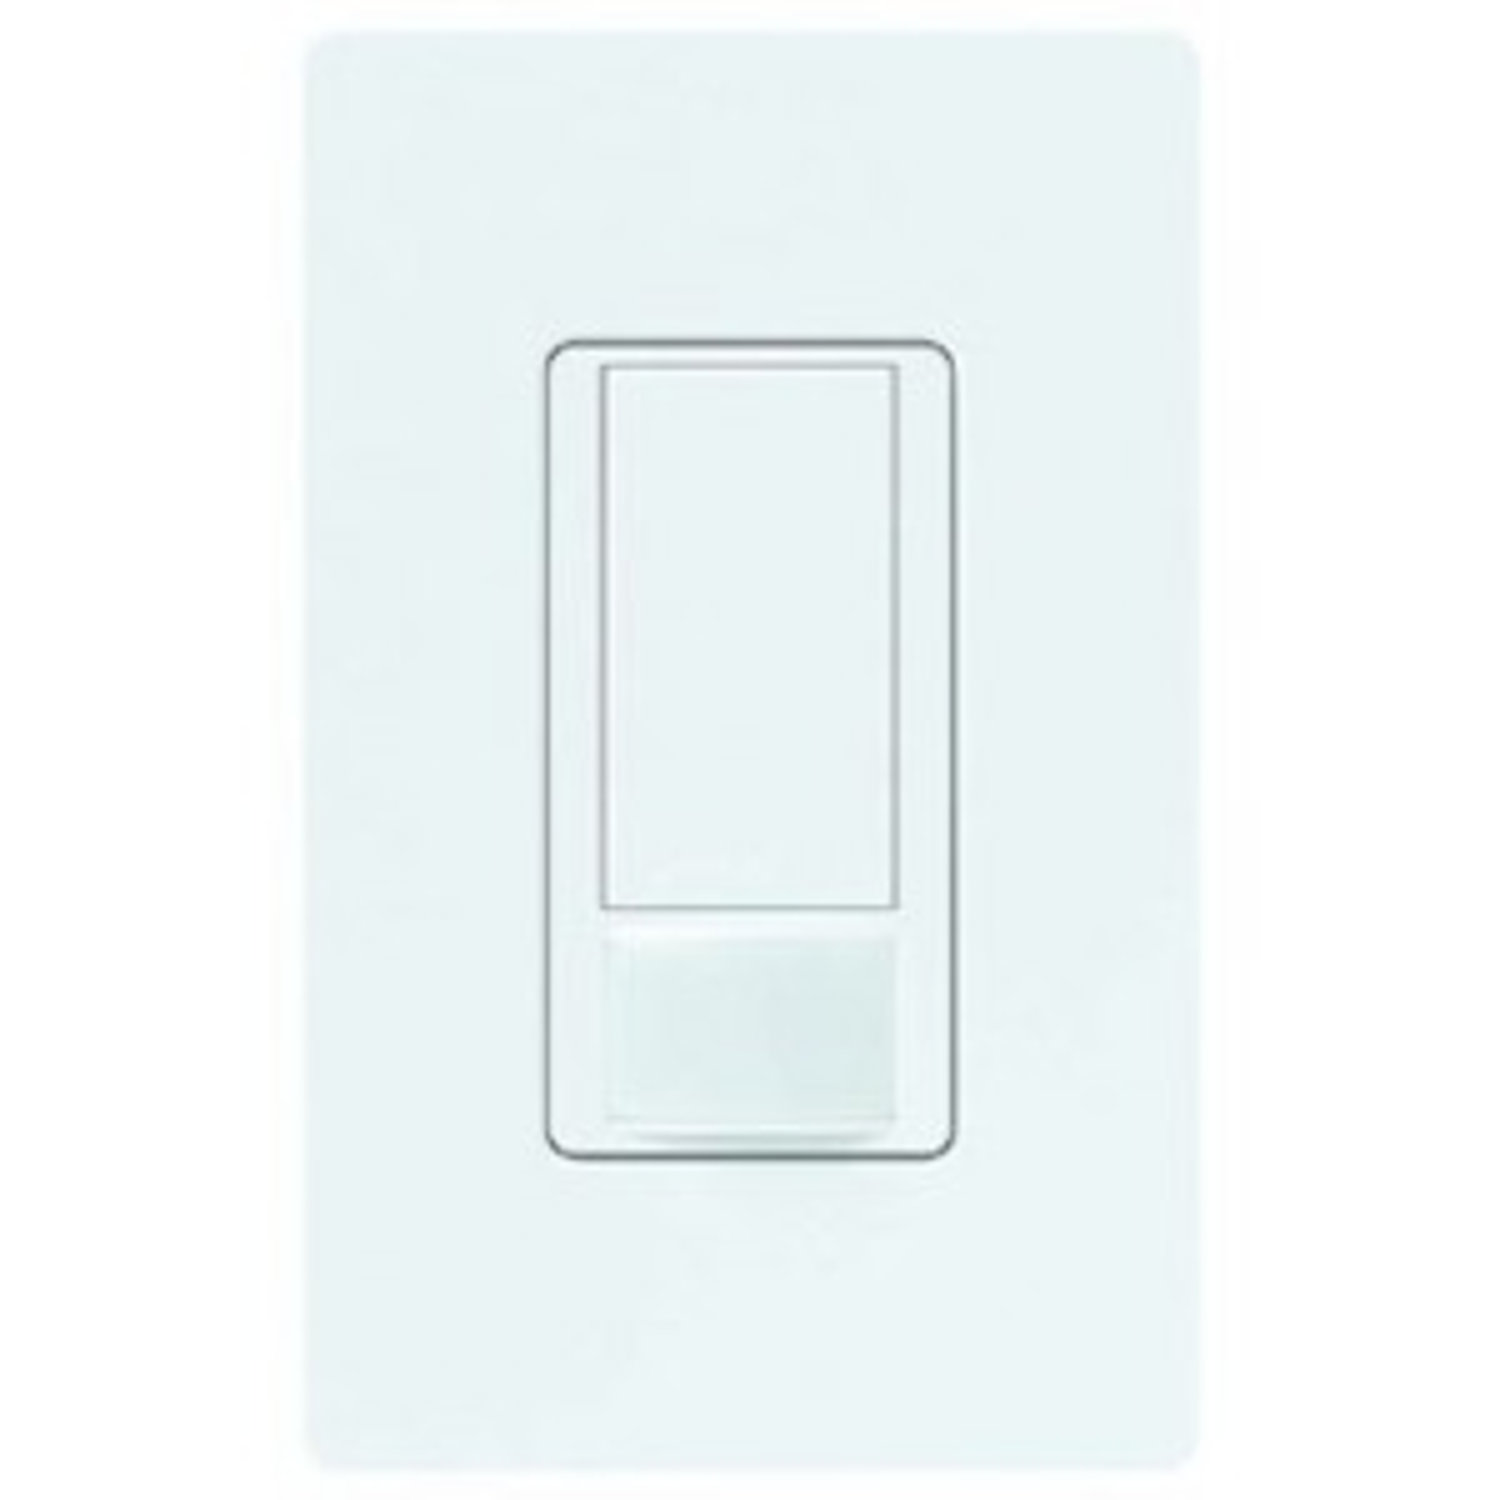 Lutron Light Switch With Built In Motion Detector